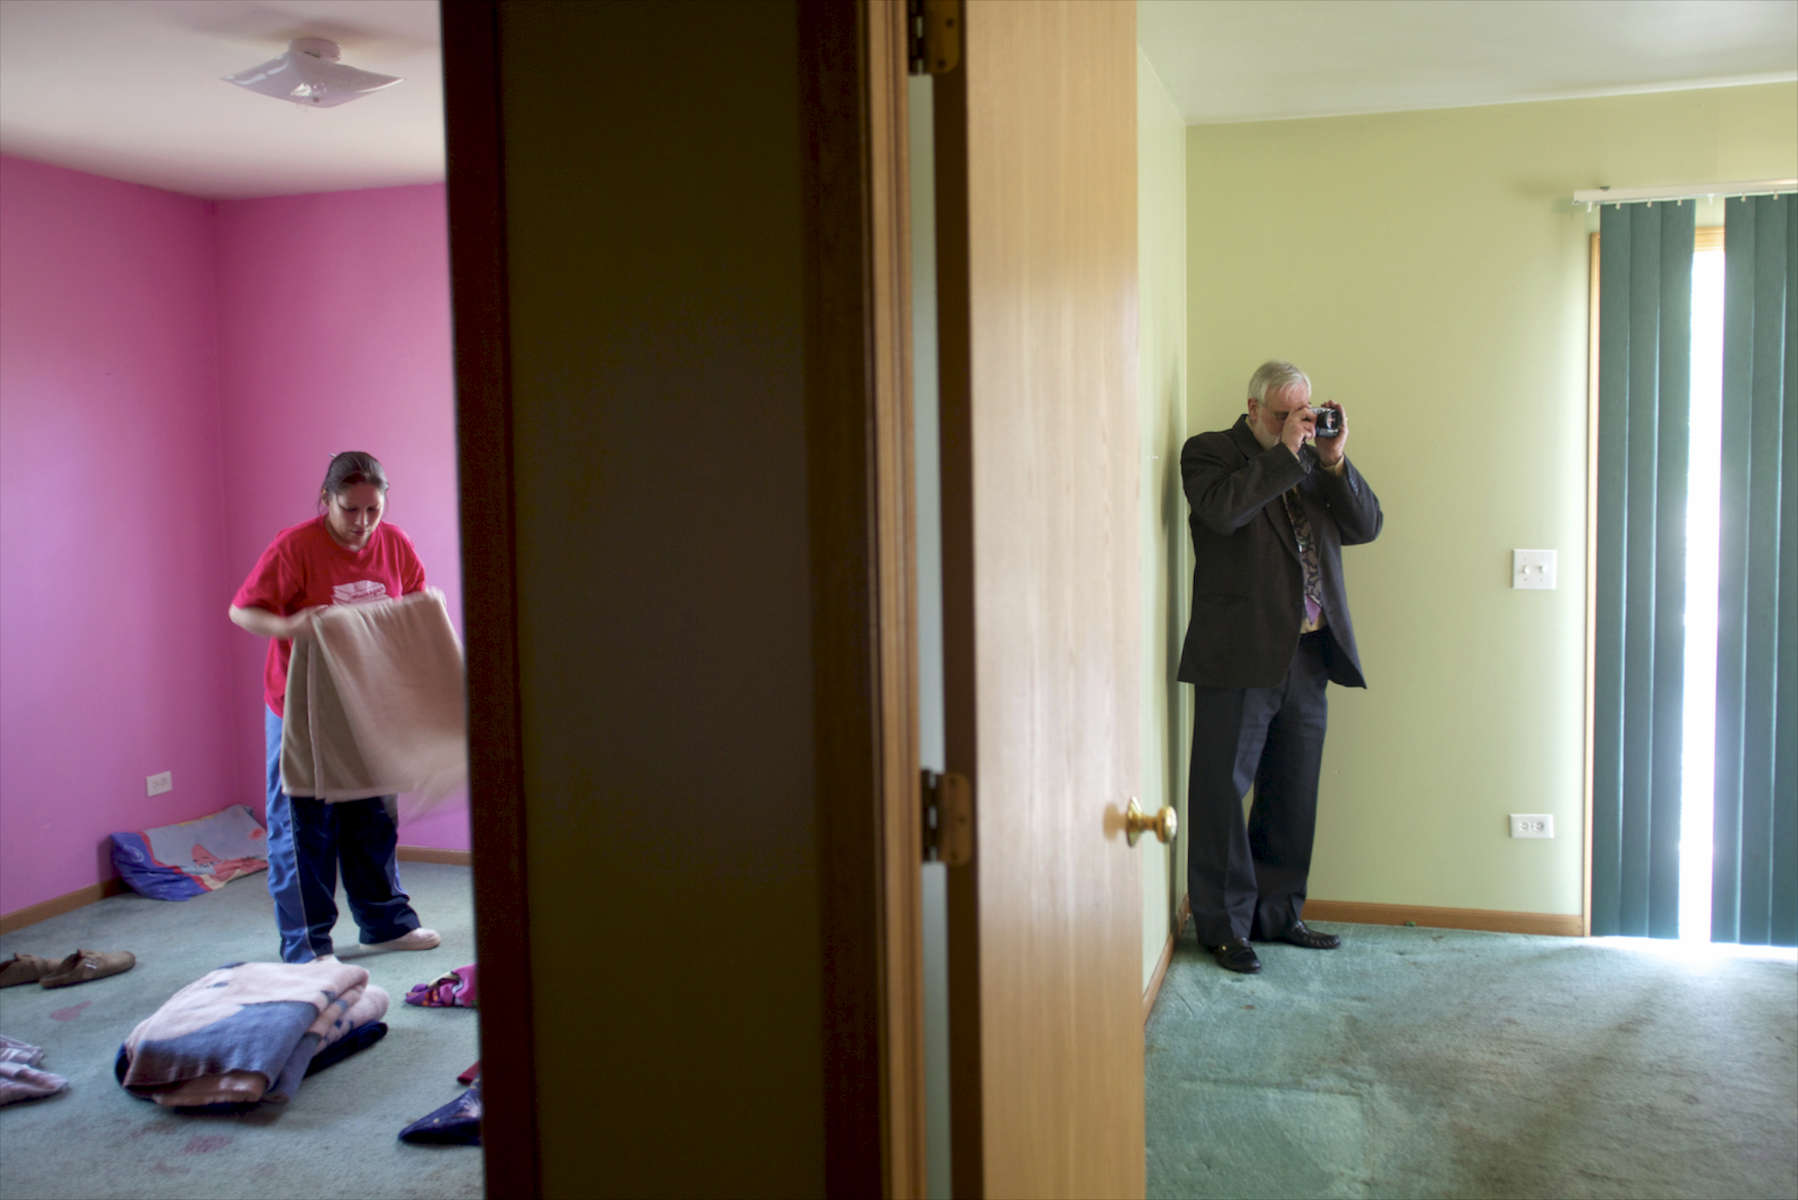 Blanca Lopez gathers her belongings before moving out of her foreclosed home while realtor Joseph Laubinger takes photographs to show that the property has been vacated. In addition to selling homes, Laubinger works with banks to make sure homeowners in foreclosure move out of the homes.